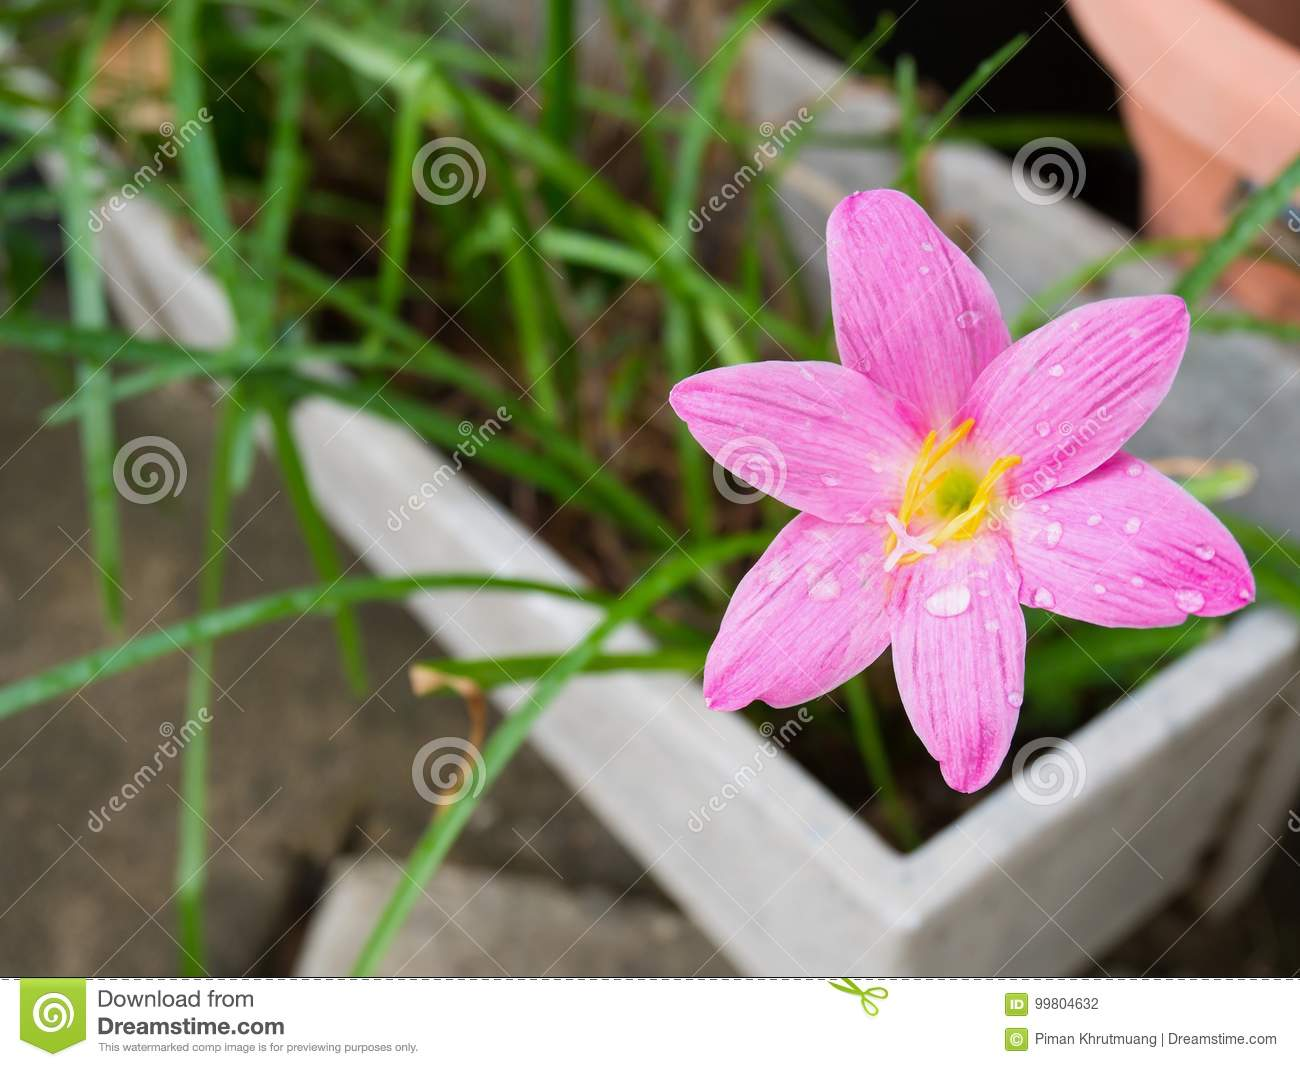 Rain lily flower stock photo. Image of bloom, blossom - 99804632